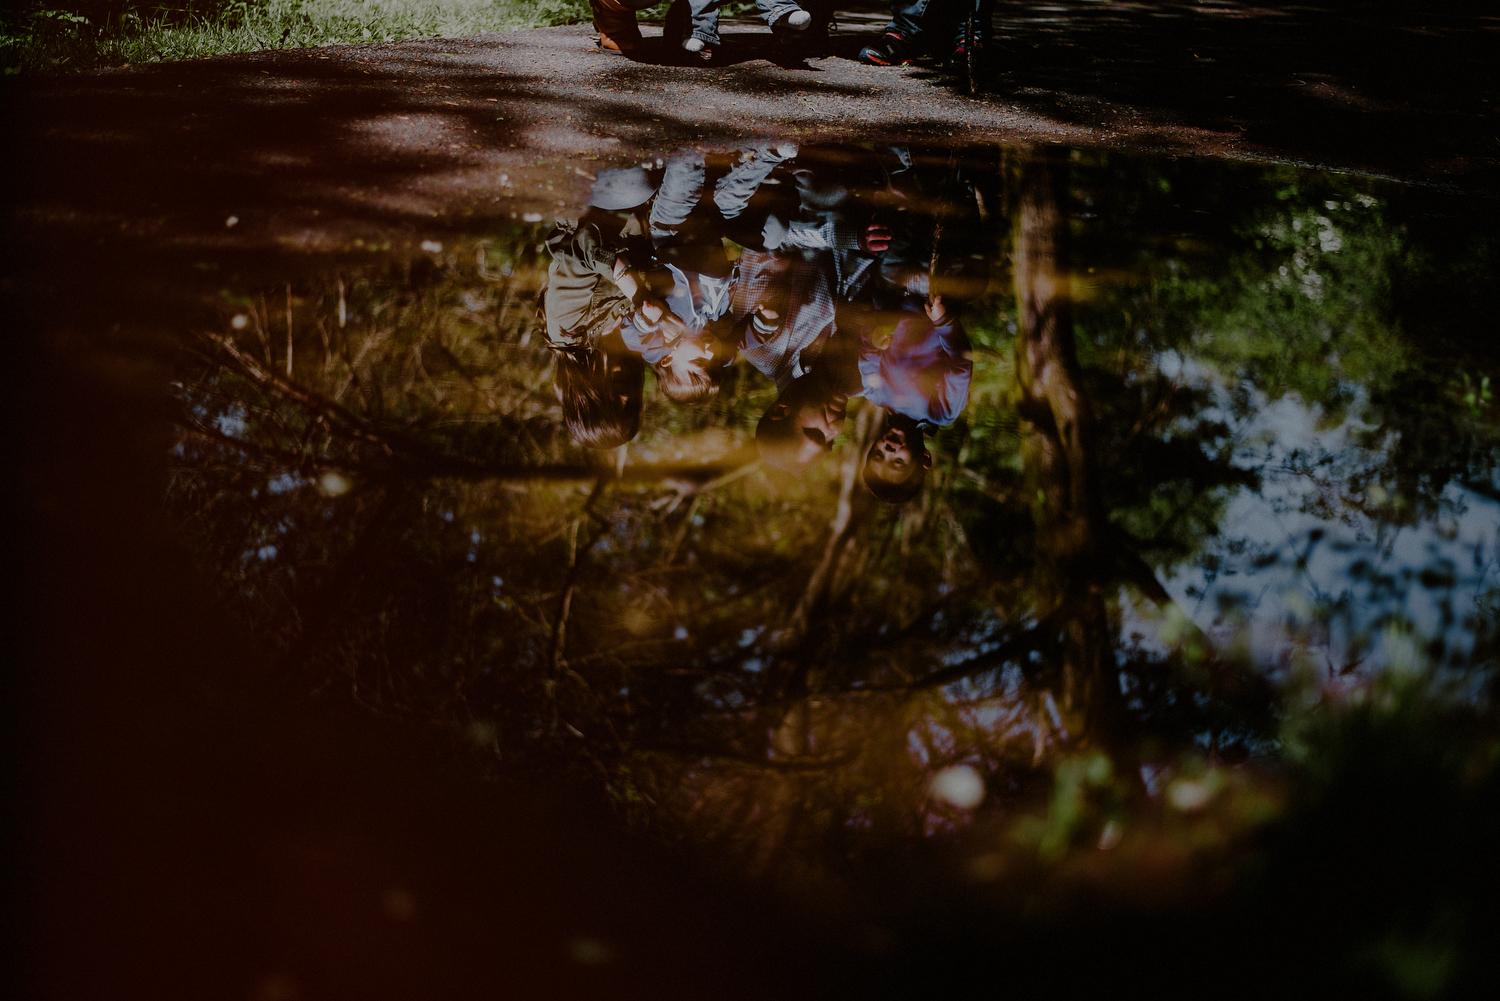 creative photo of family reflection in a puddle